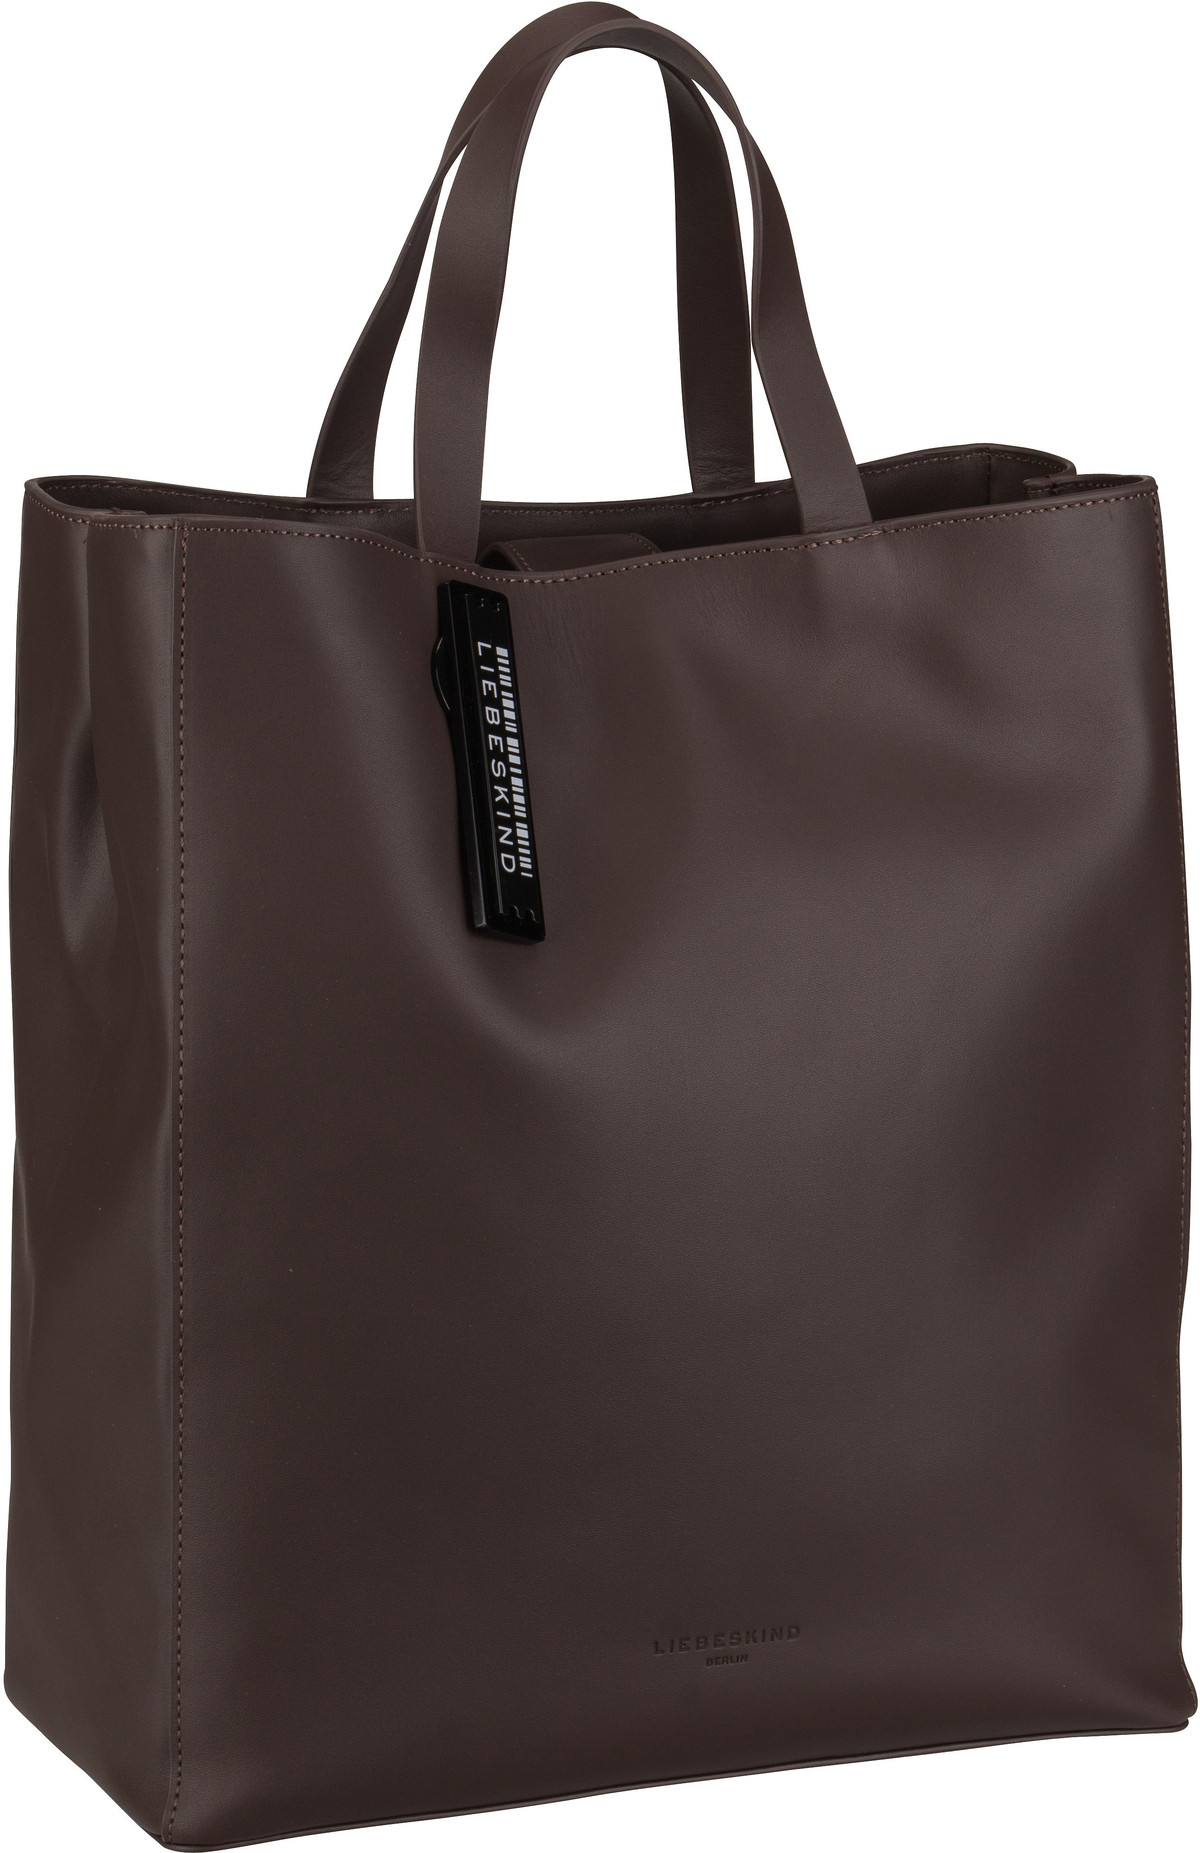 Berlin Handtasche Paper Bag Tote M Dark Brown